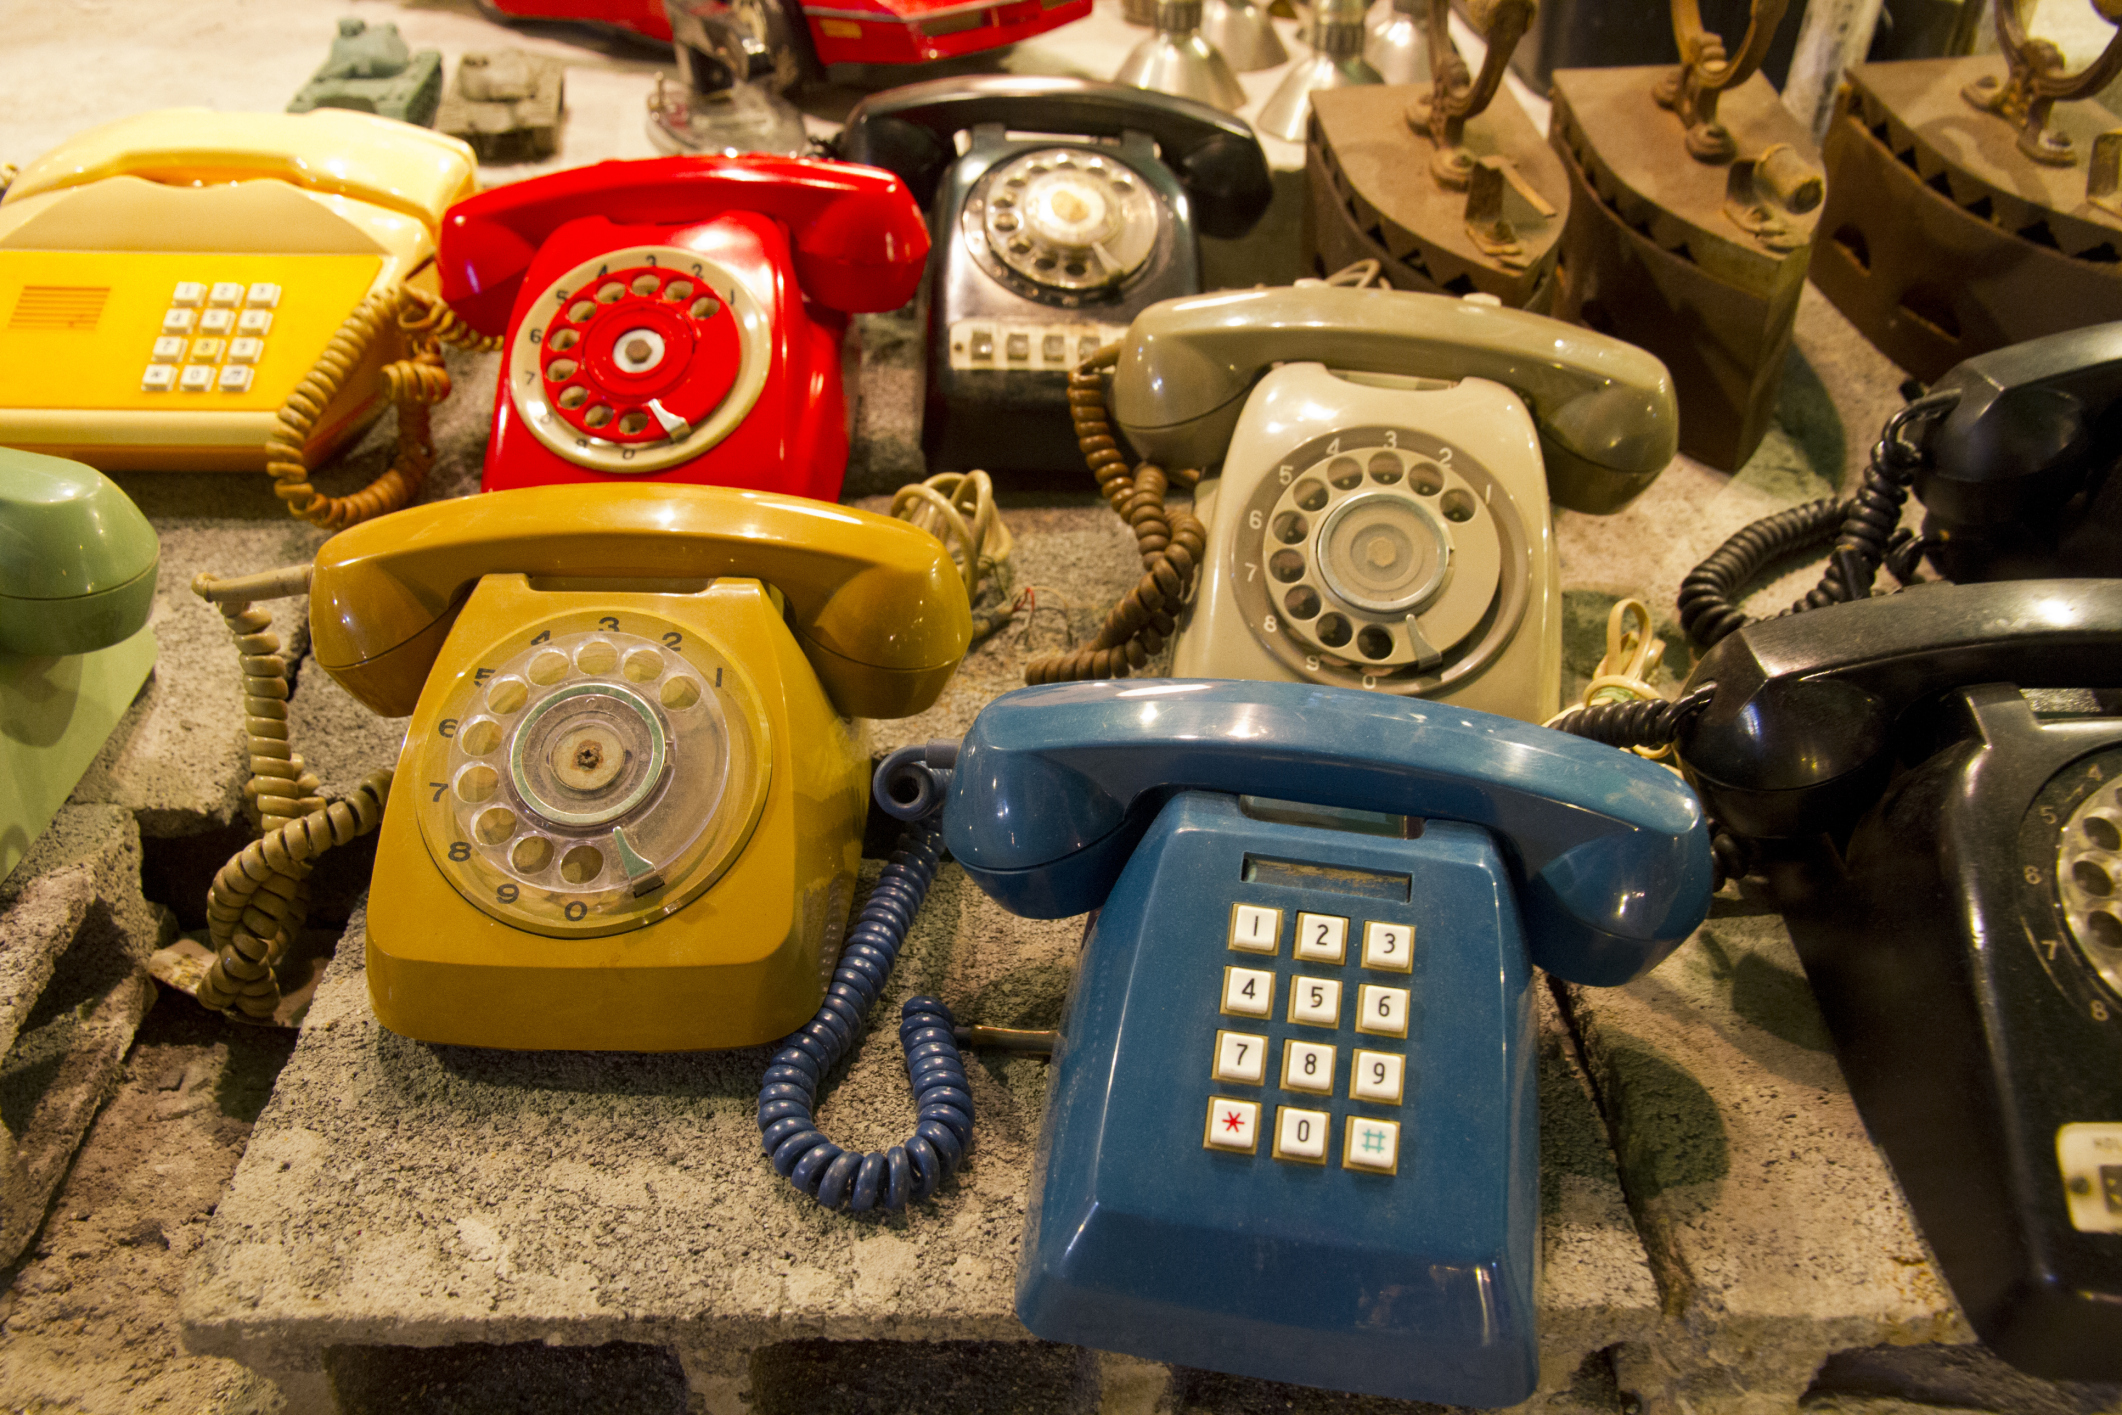 Telephones for sale at Talat Rot Fai